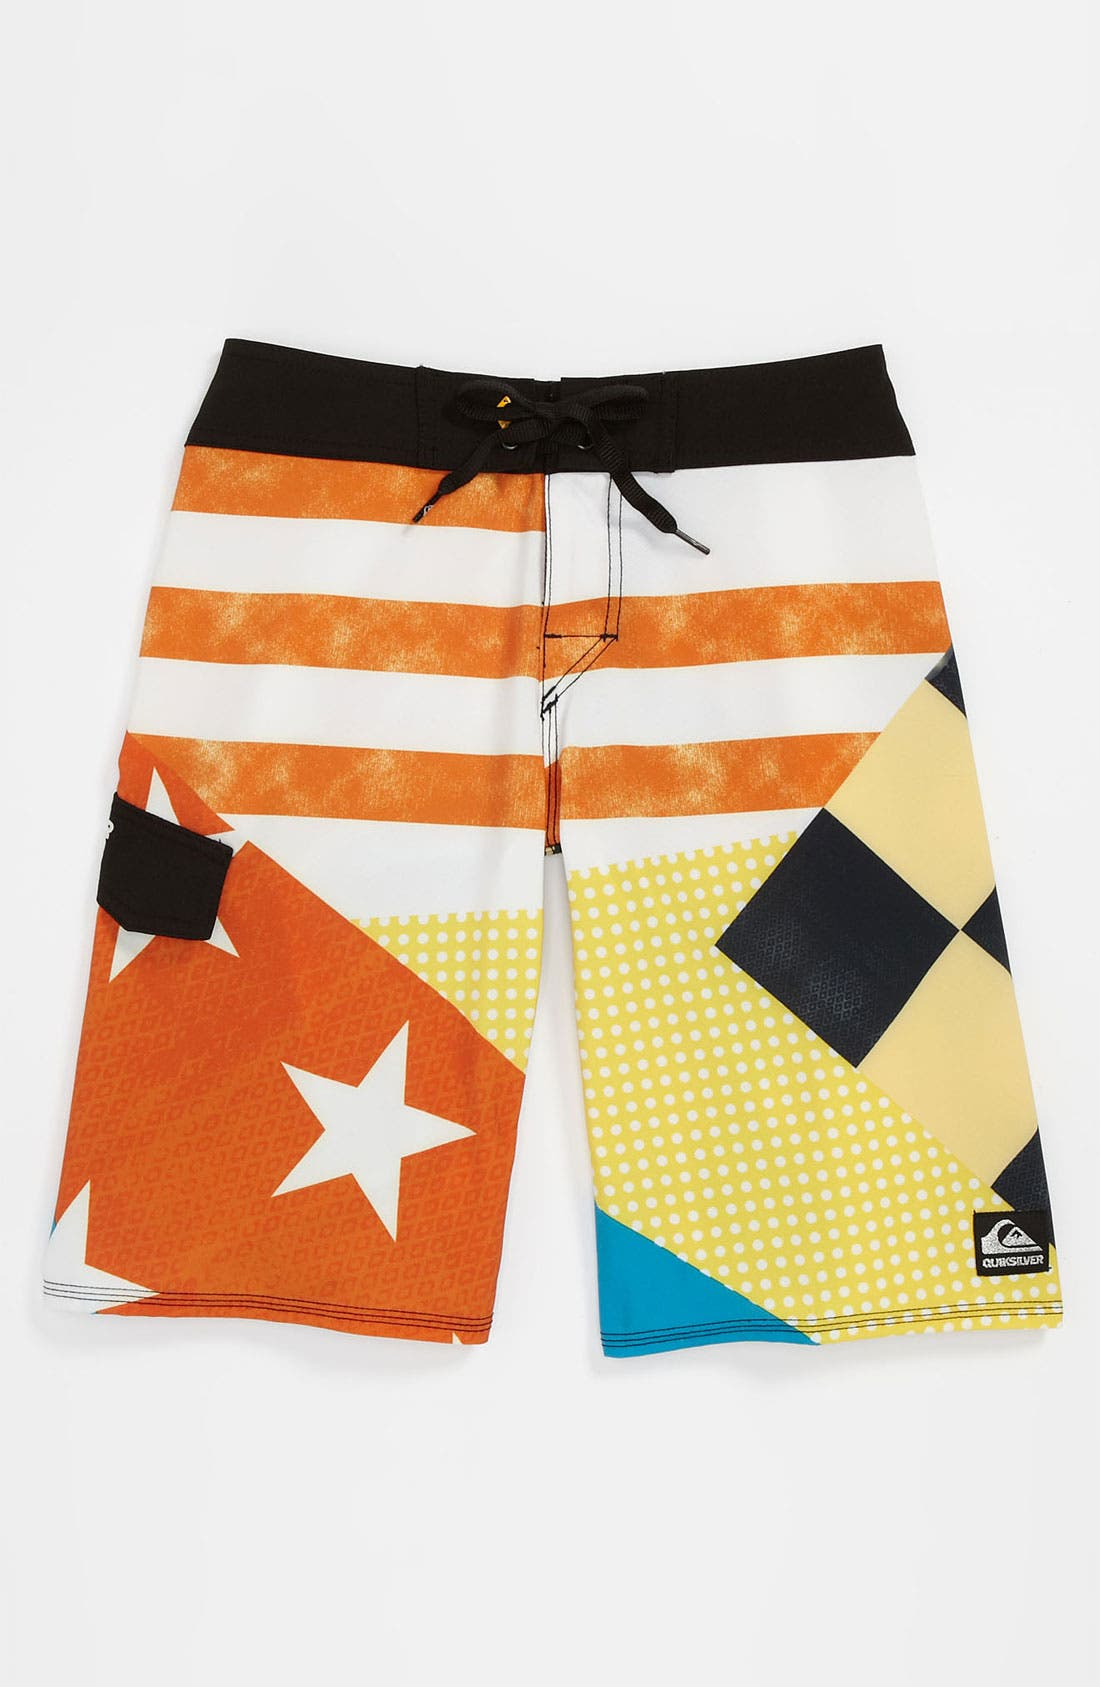 Alternate Image 1 Selected - Quiksilver 'Cypher Echo' Board Shorts (Big Boys)